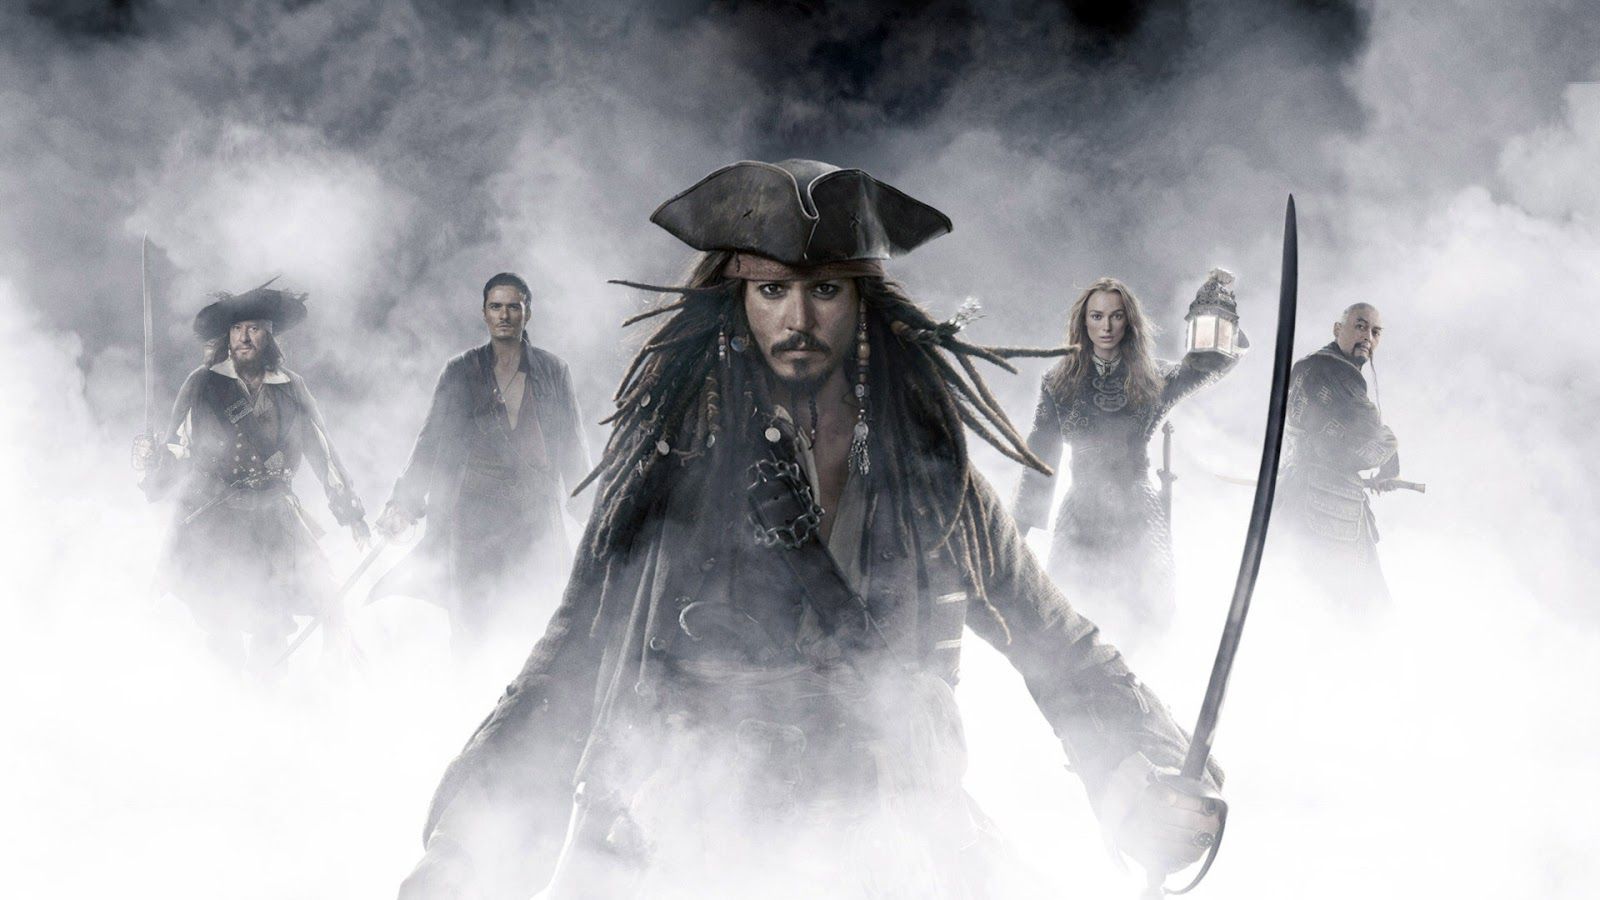 Pirates Of The Caribean Wallpaper: Movies HD Wallpapers